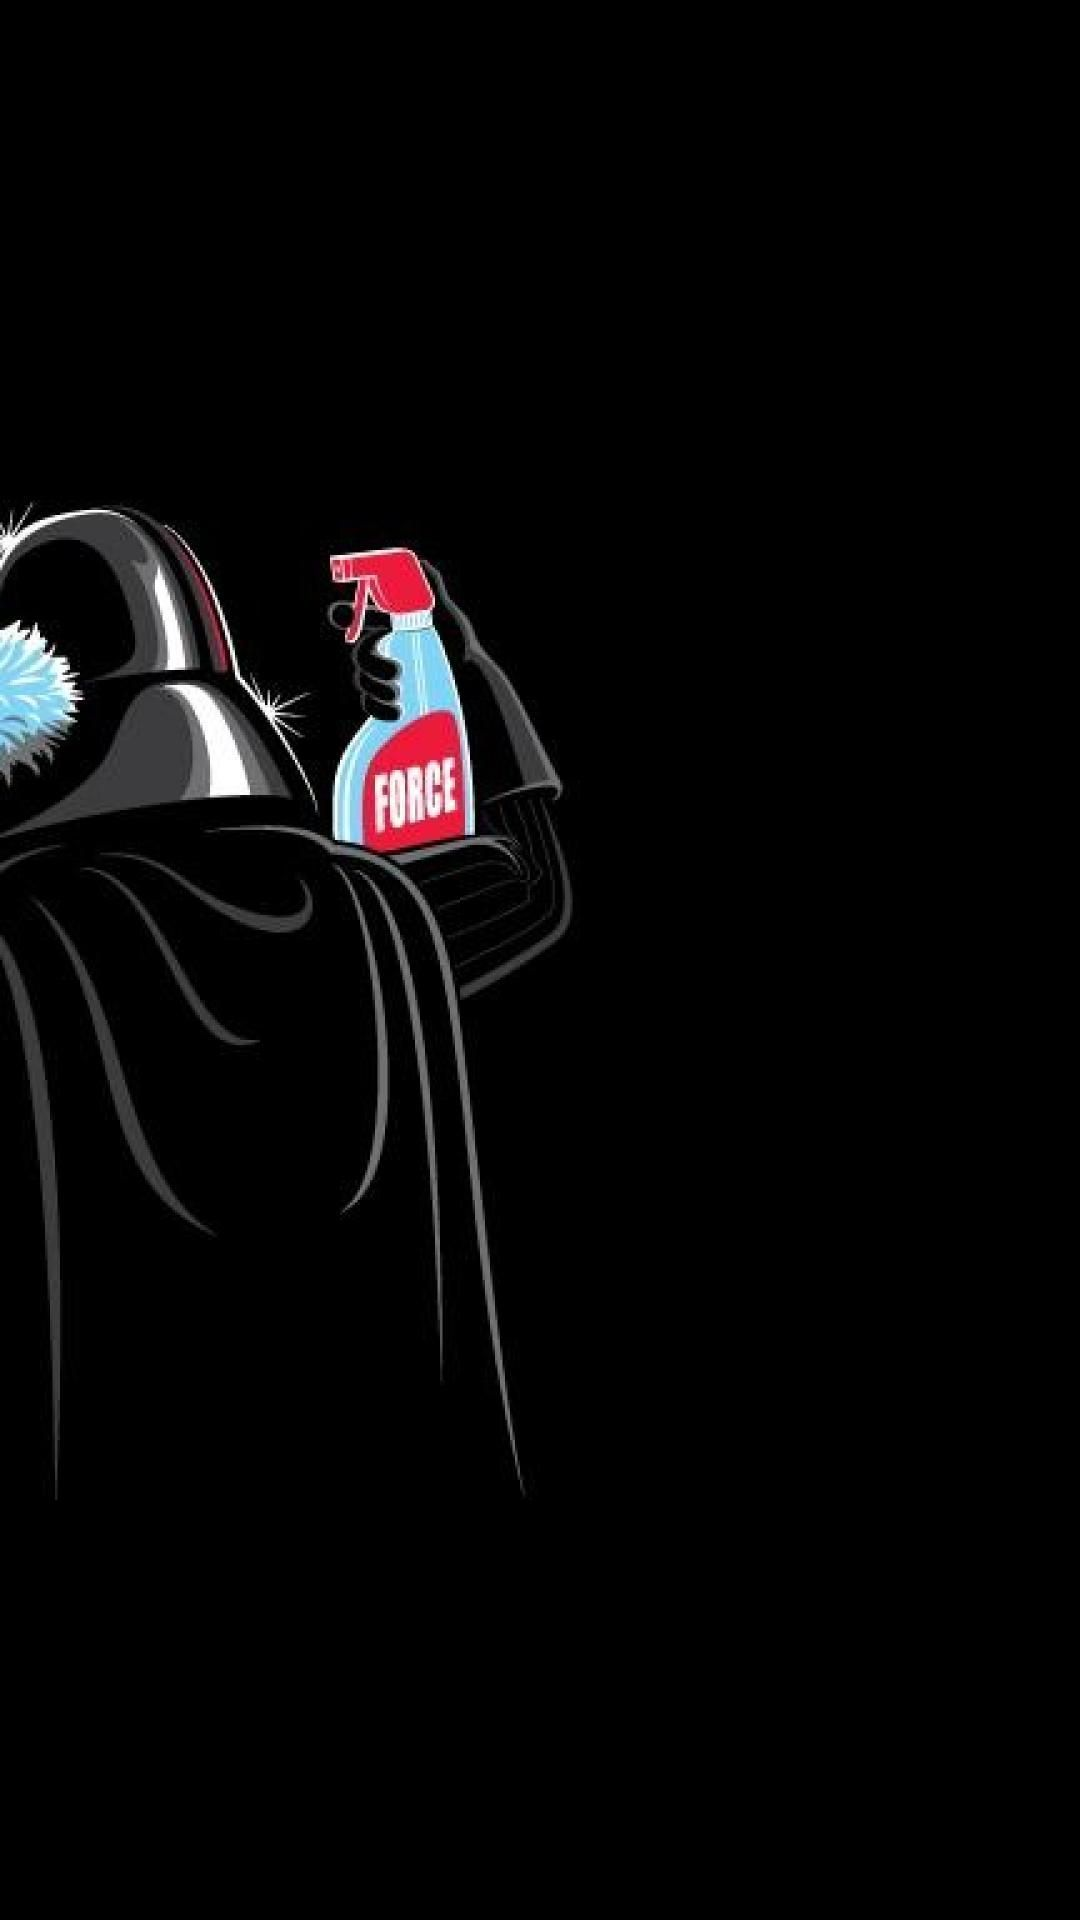 Funny Star Wars Iphone Wallpapers On Wallpaperdog